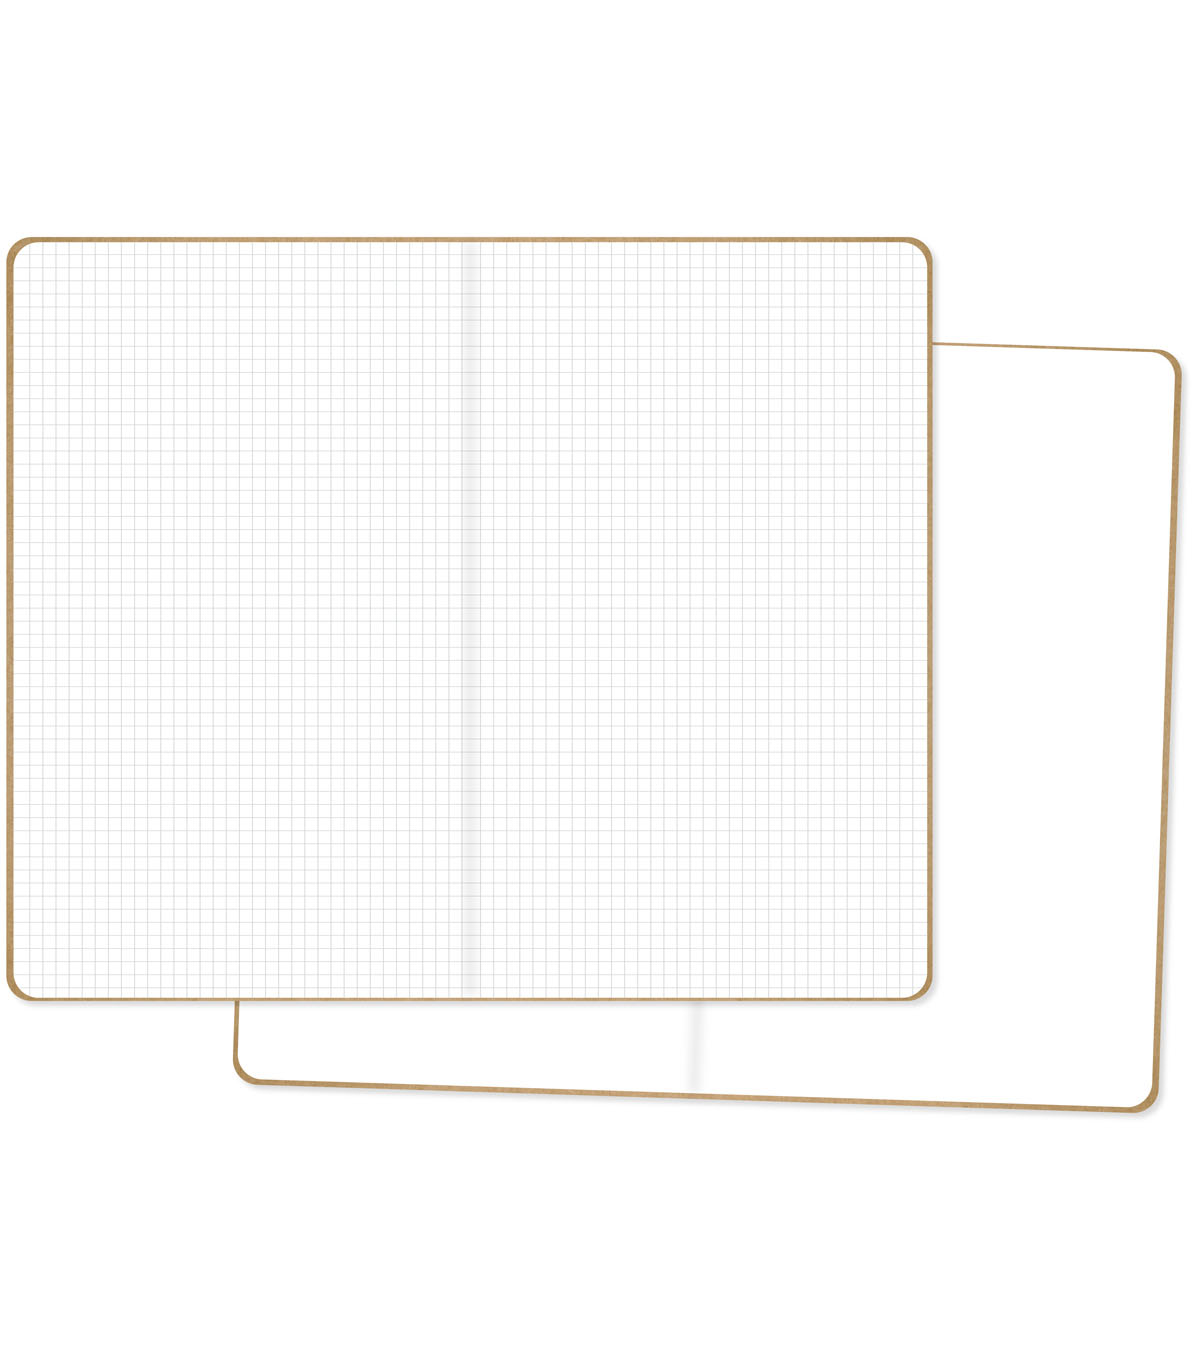 Carpe Diem Traveler\u0027s Notebook Inserts 2/Pkg-One Blank/One Grid